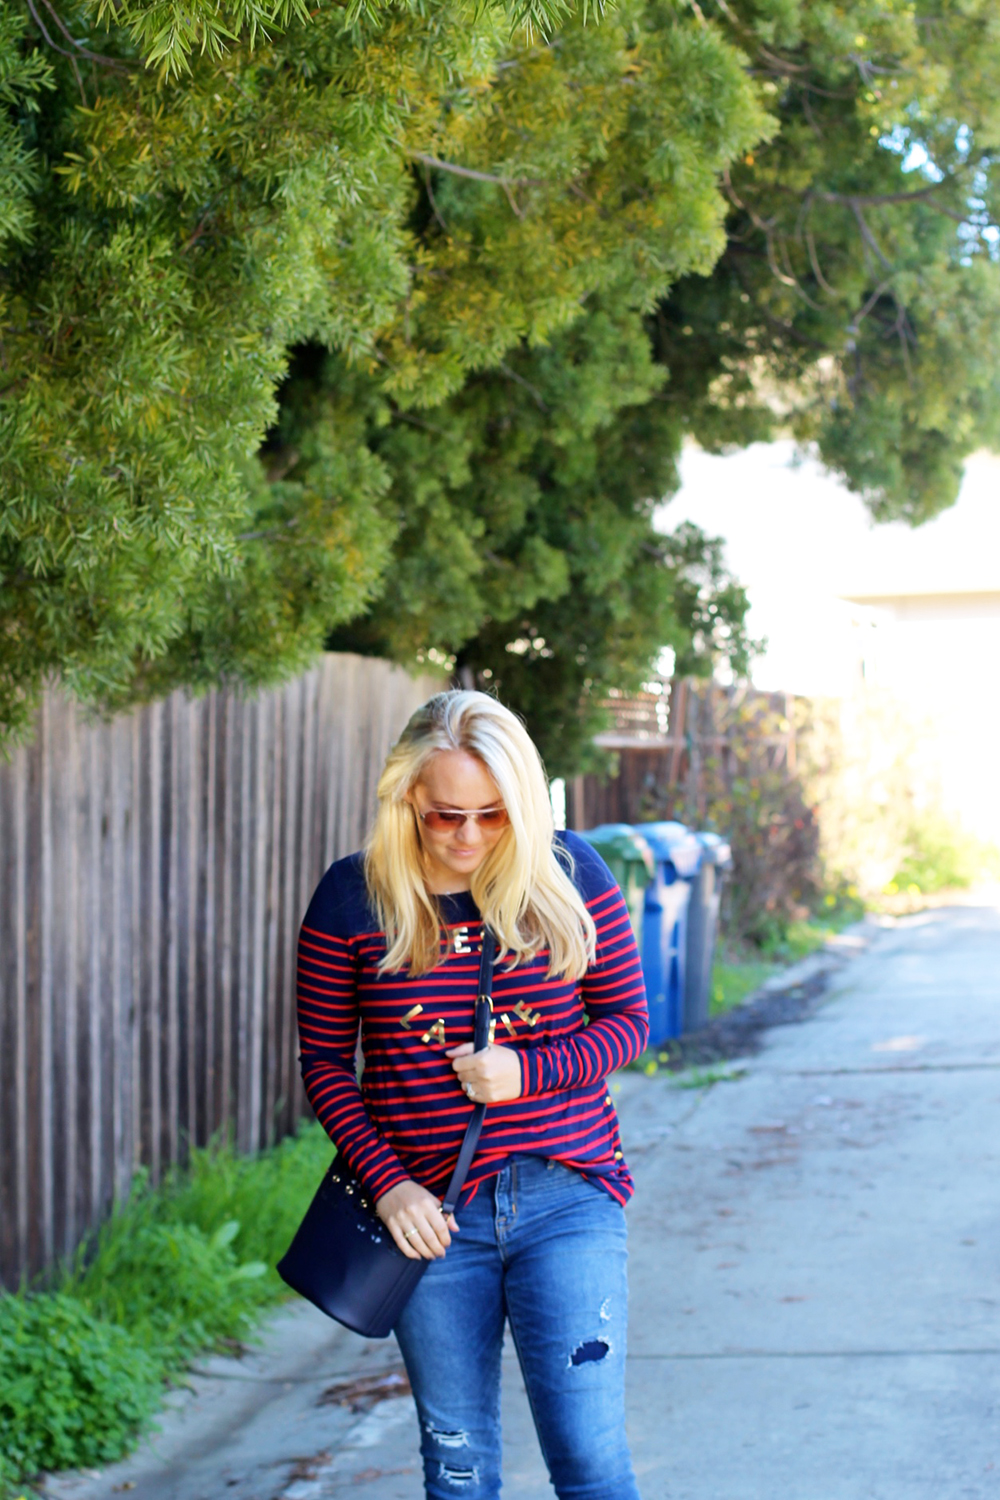 C'est La Vie-Everyday Mom Style-Mom Uniform-Nursing Top-Outfit Inspiration-Bay Area Fashion Blogger-Have Need Want 11